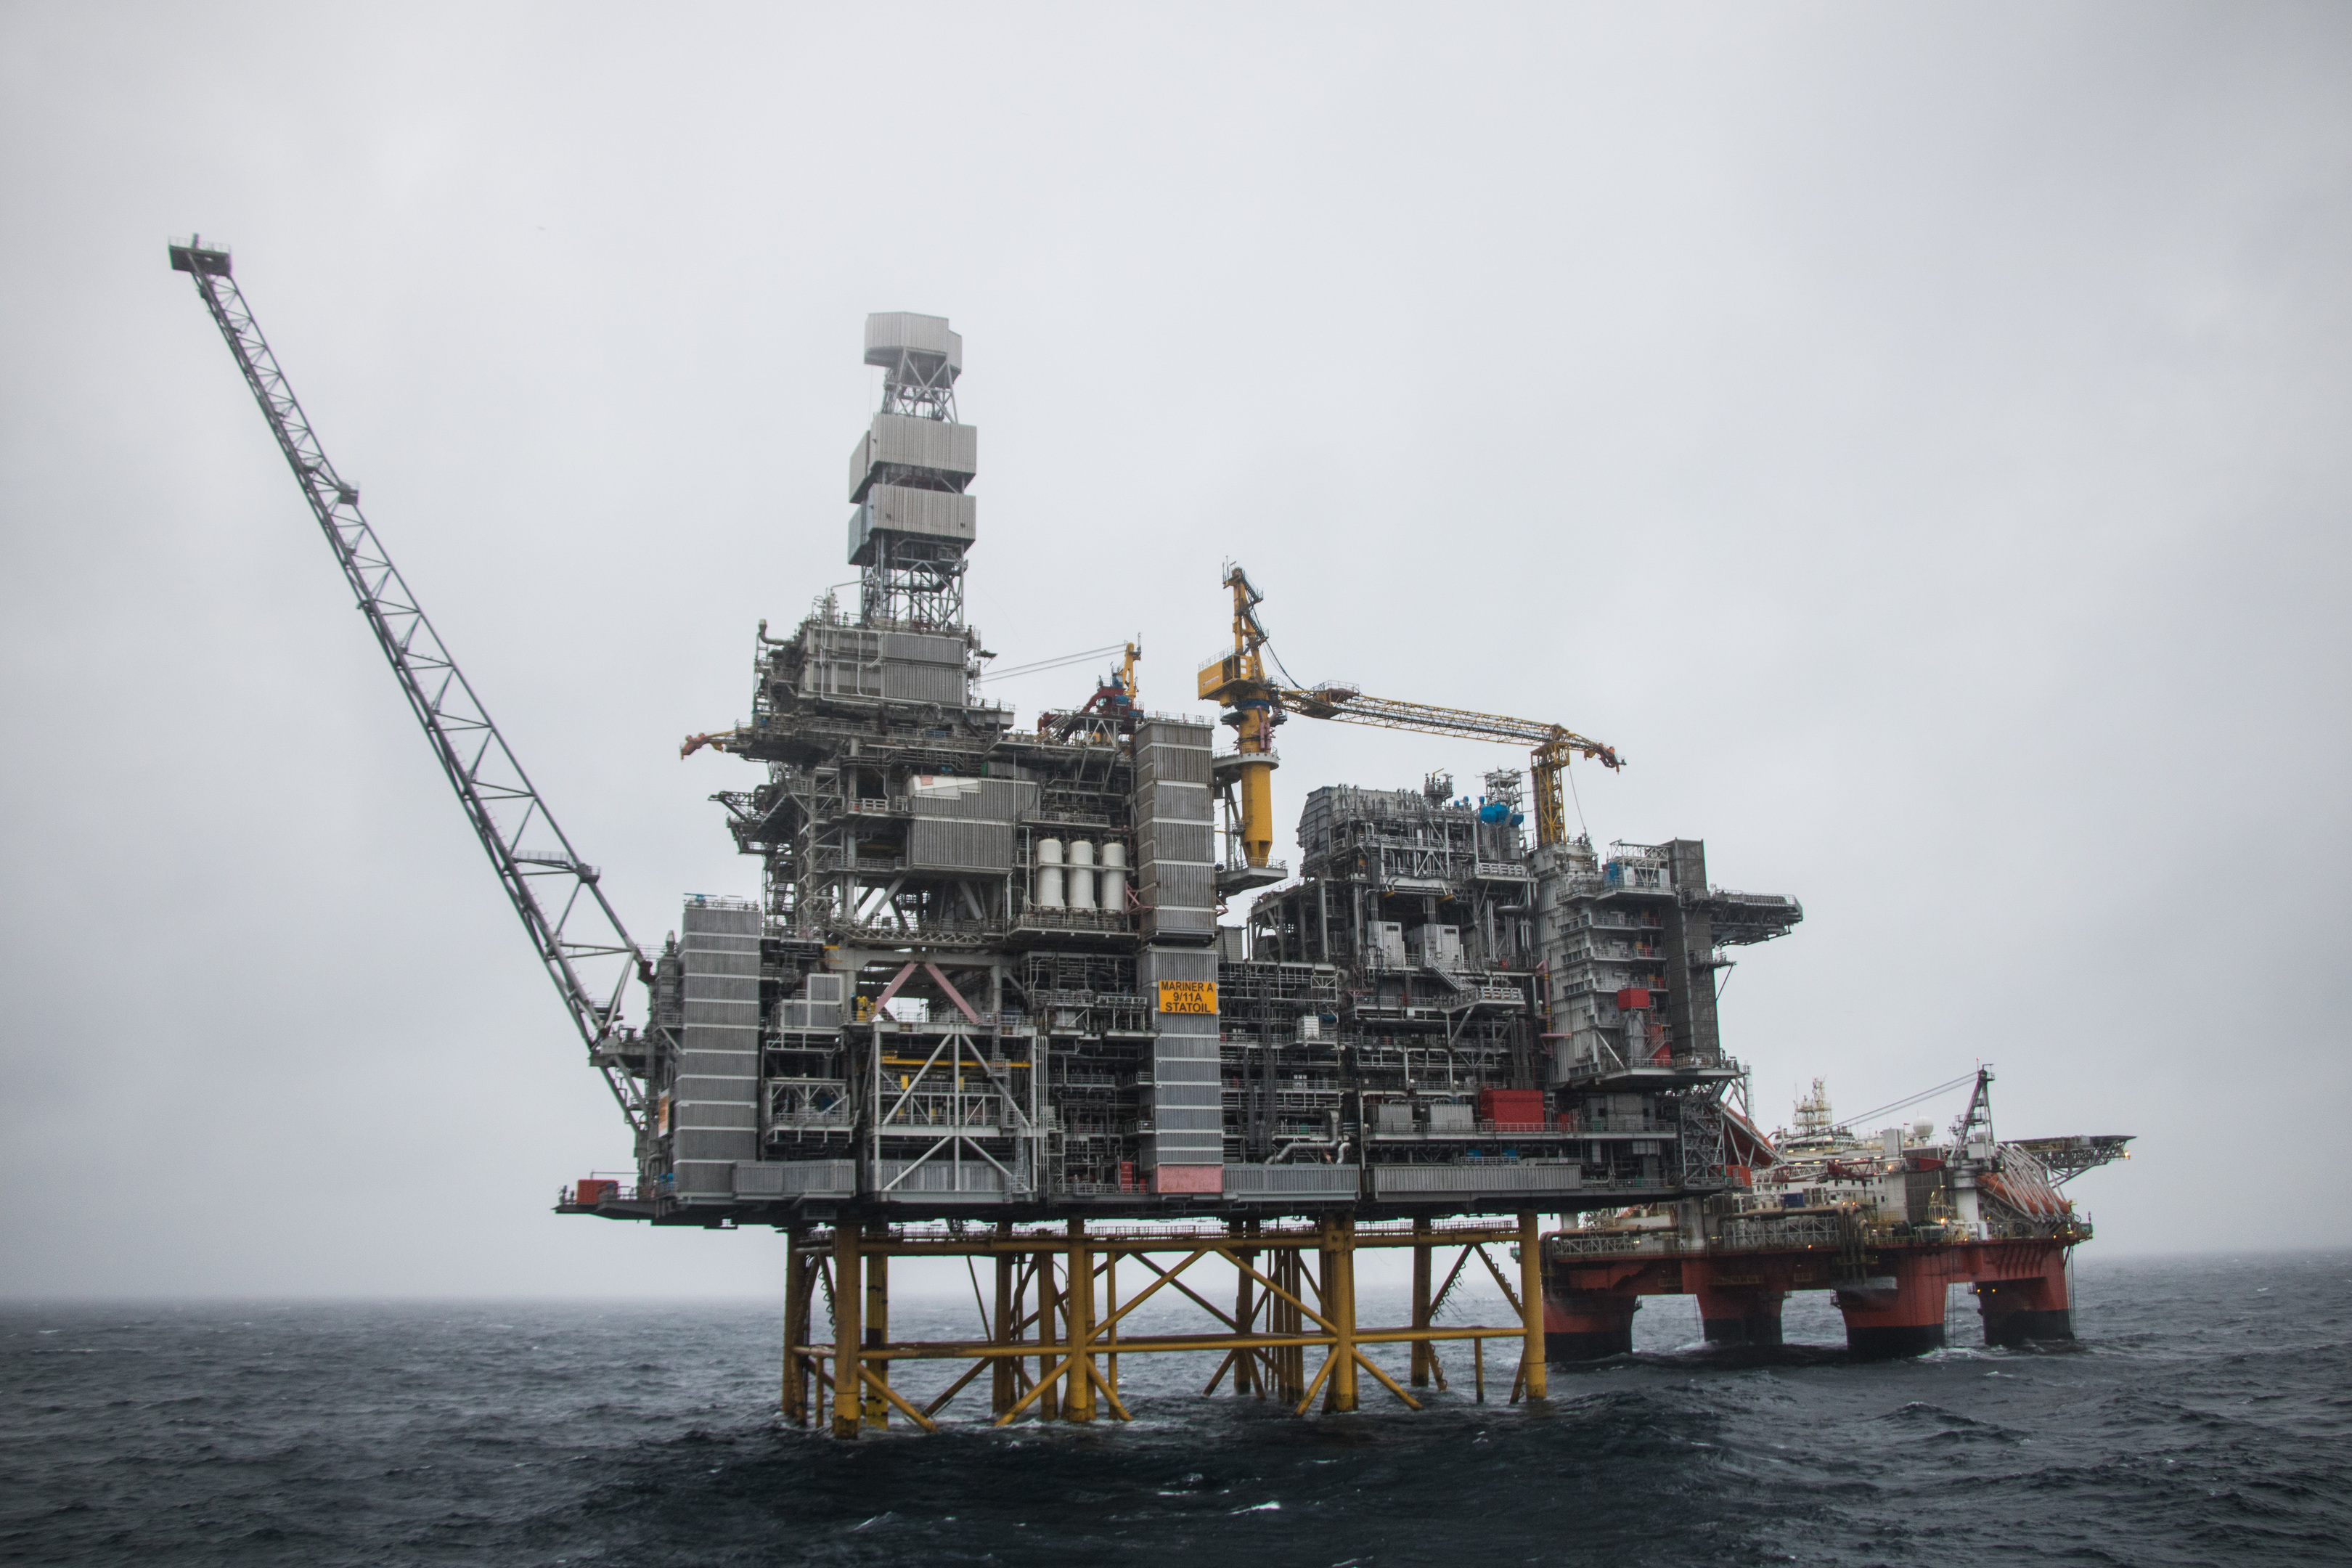 Mariner platform. Photo credit: Jamie Baikie/Equinor